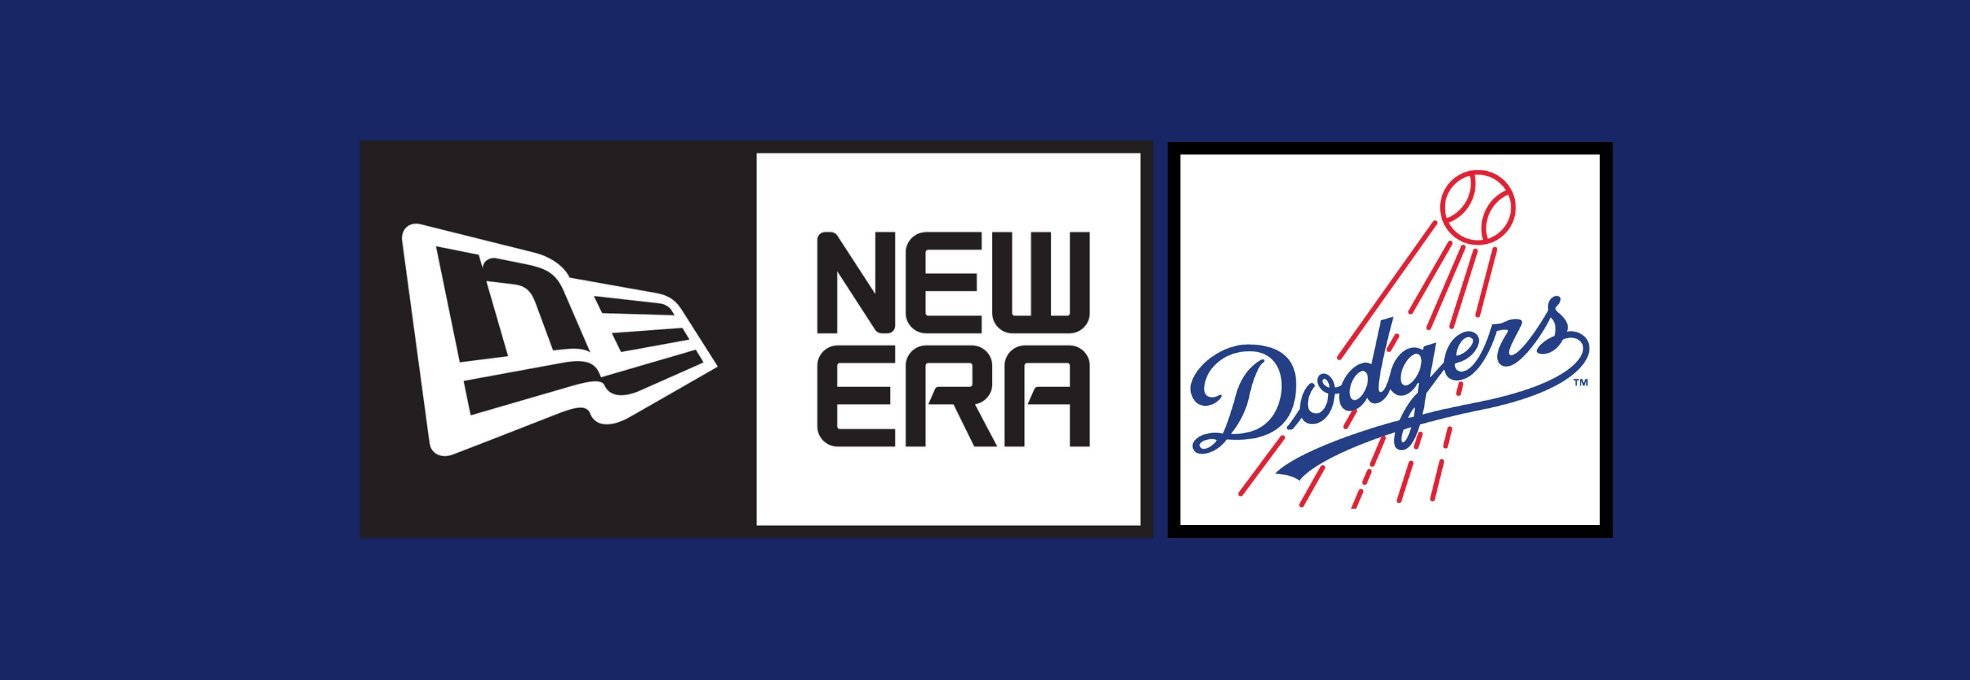 New Era Dodgers 2019